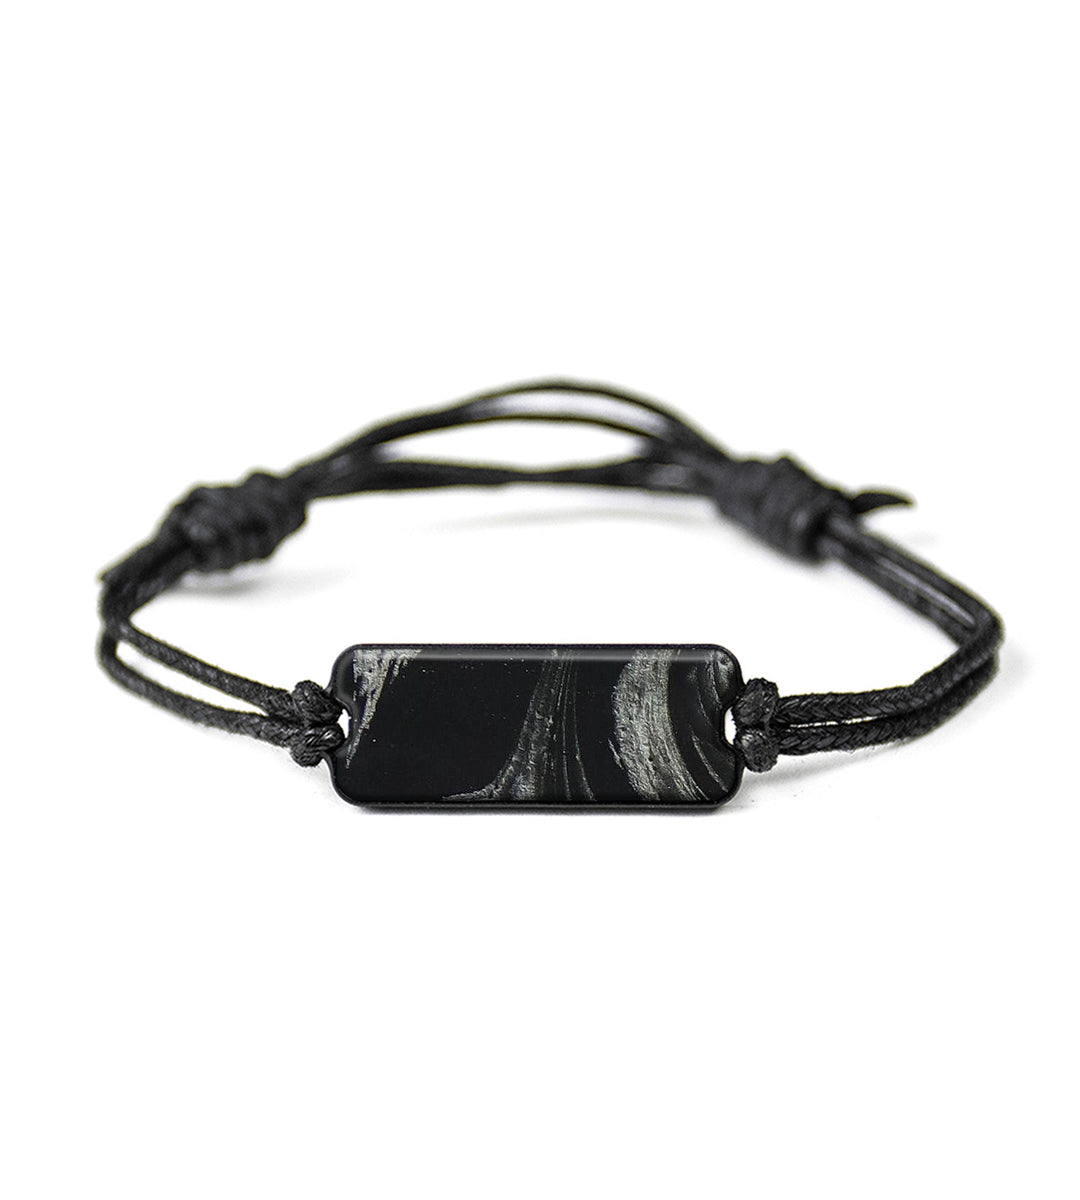 Classic ResinArt Bracelet - Veronique (Black & White, 394147)